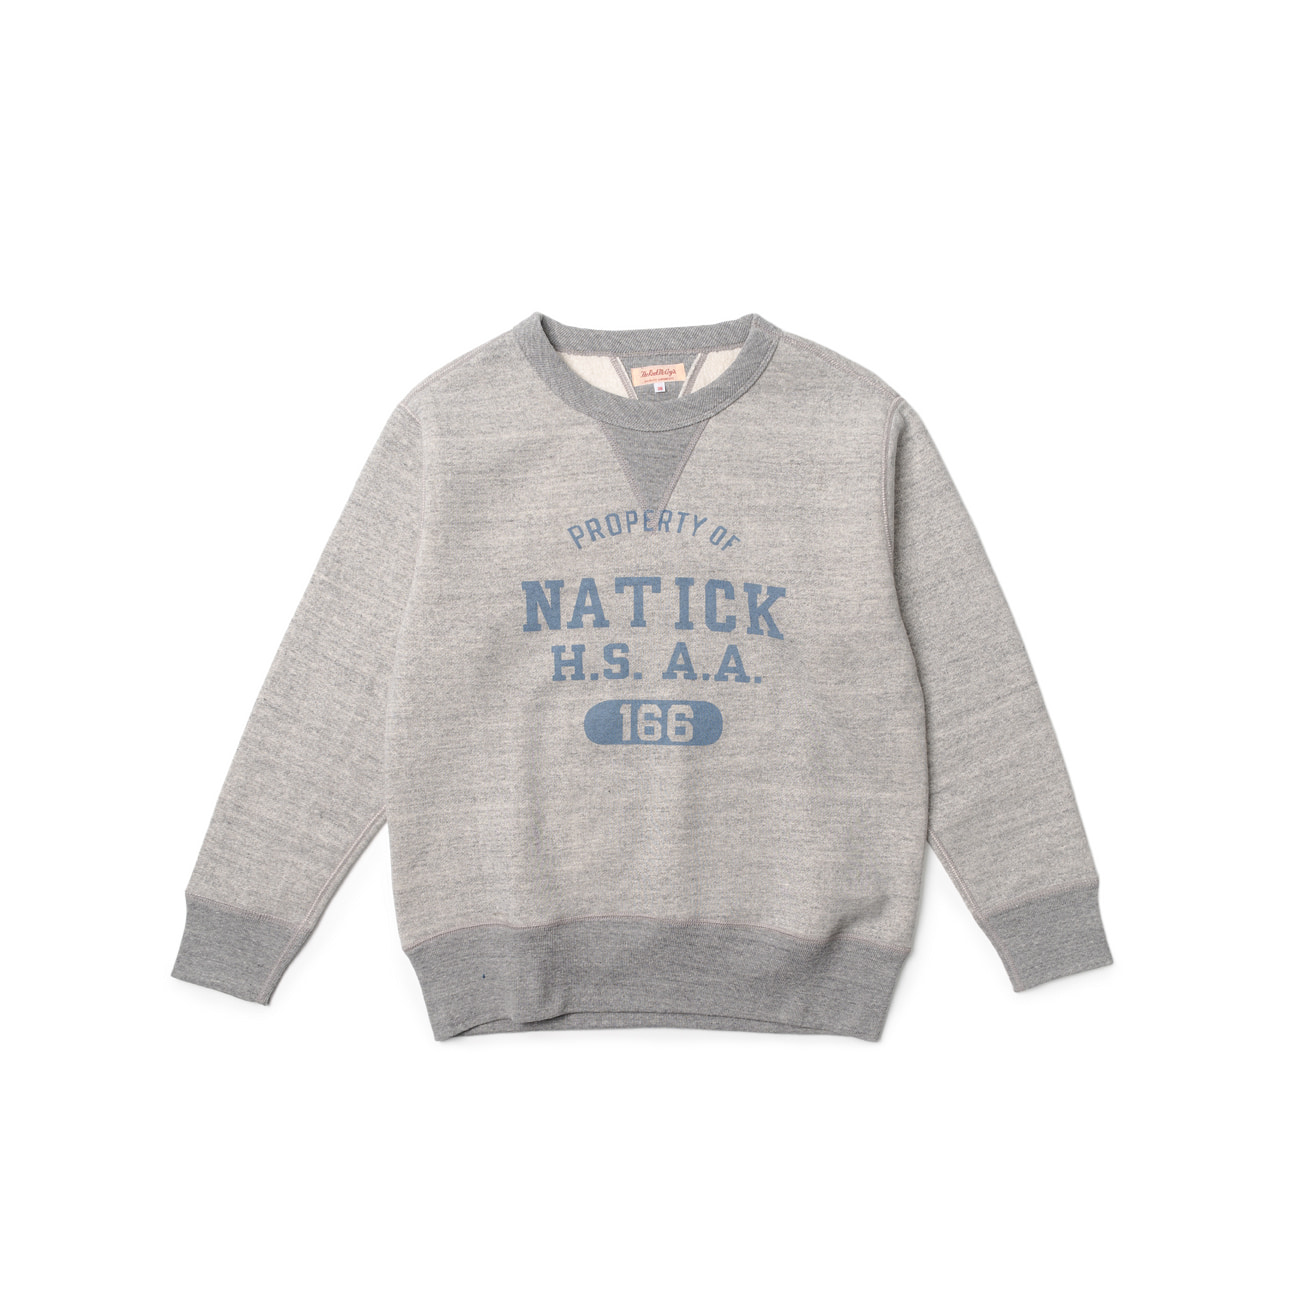 Loop Wheel Sweatshirt / Natick H.S.